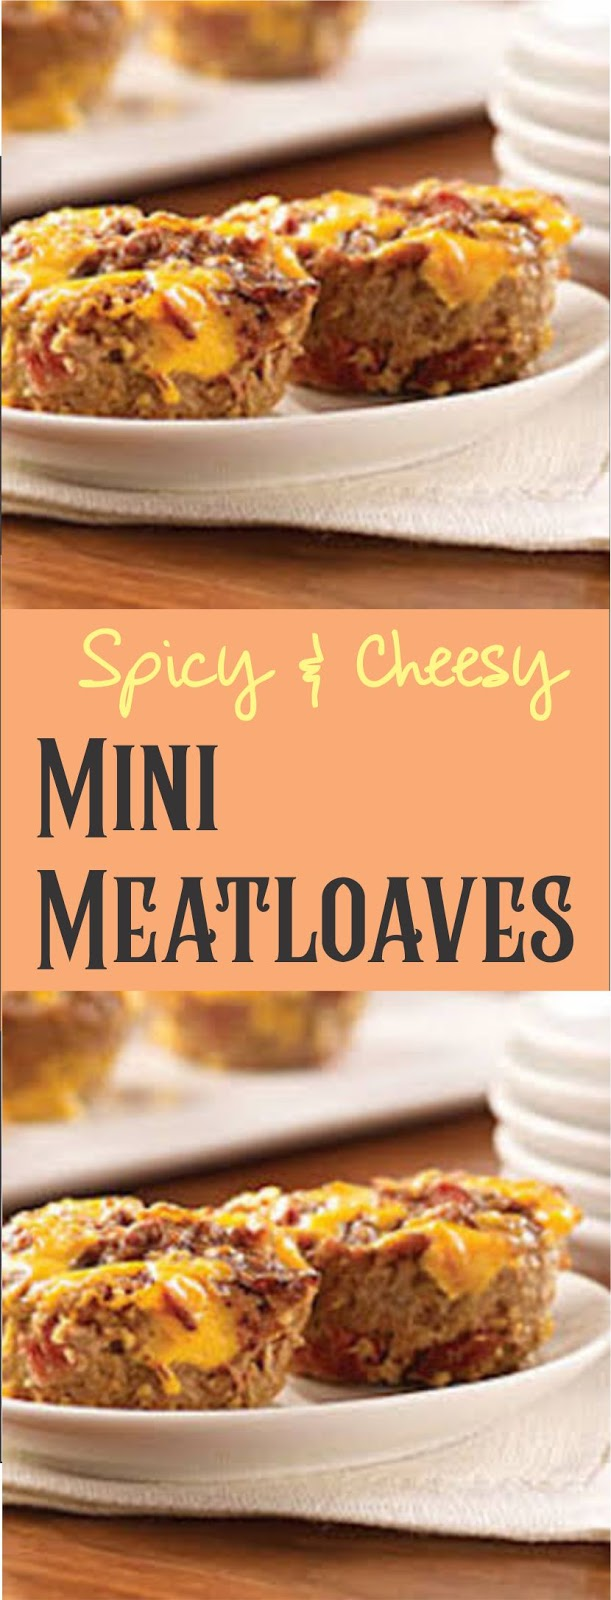 Spicy Cheesy Mini Meatloaves